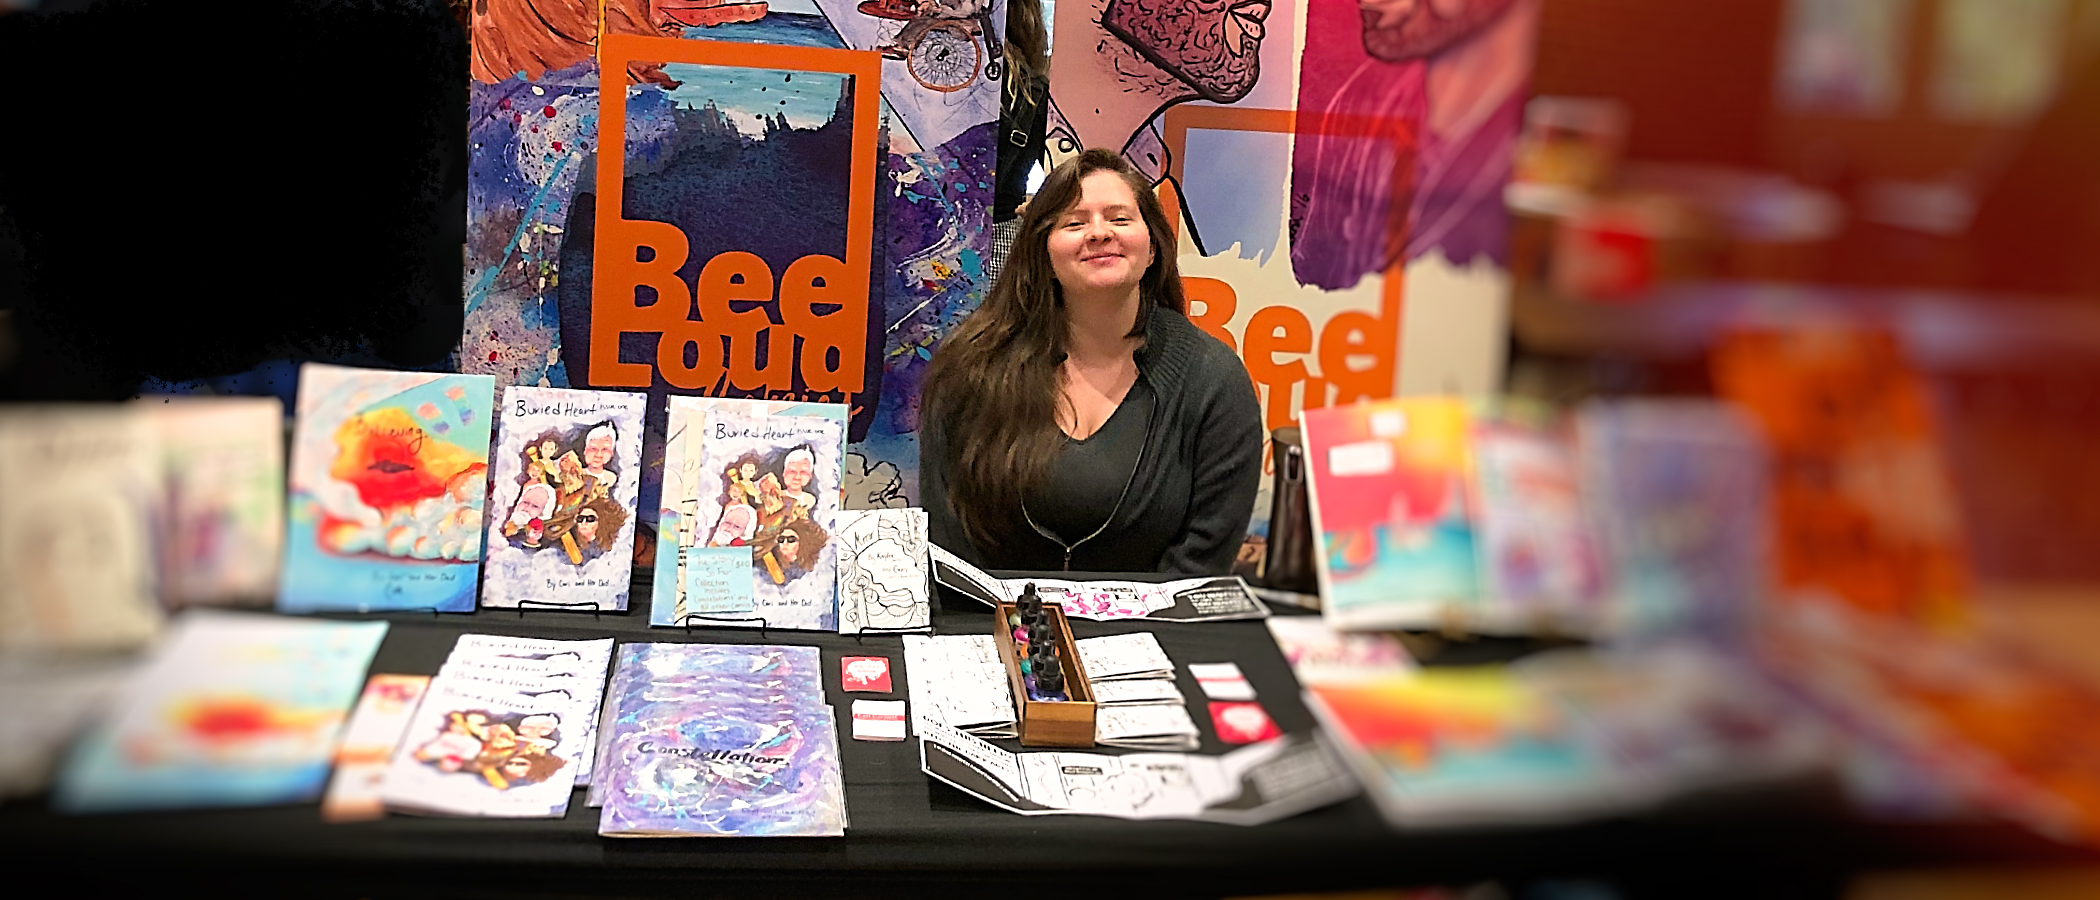 Me (Cari) tabling at the Zine Machine Fest in Durham, NC, with my and my students' work, 2018. My students often table alongside me, so imagine a few young cartoonists around me here : )